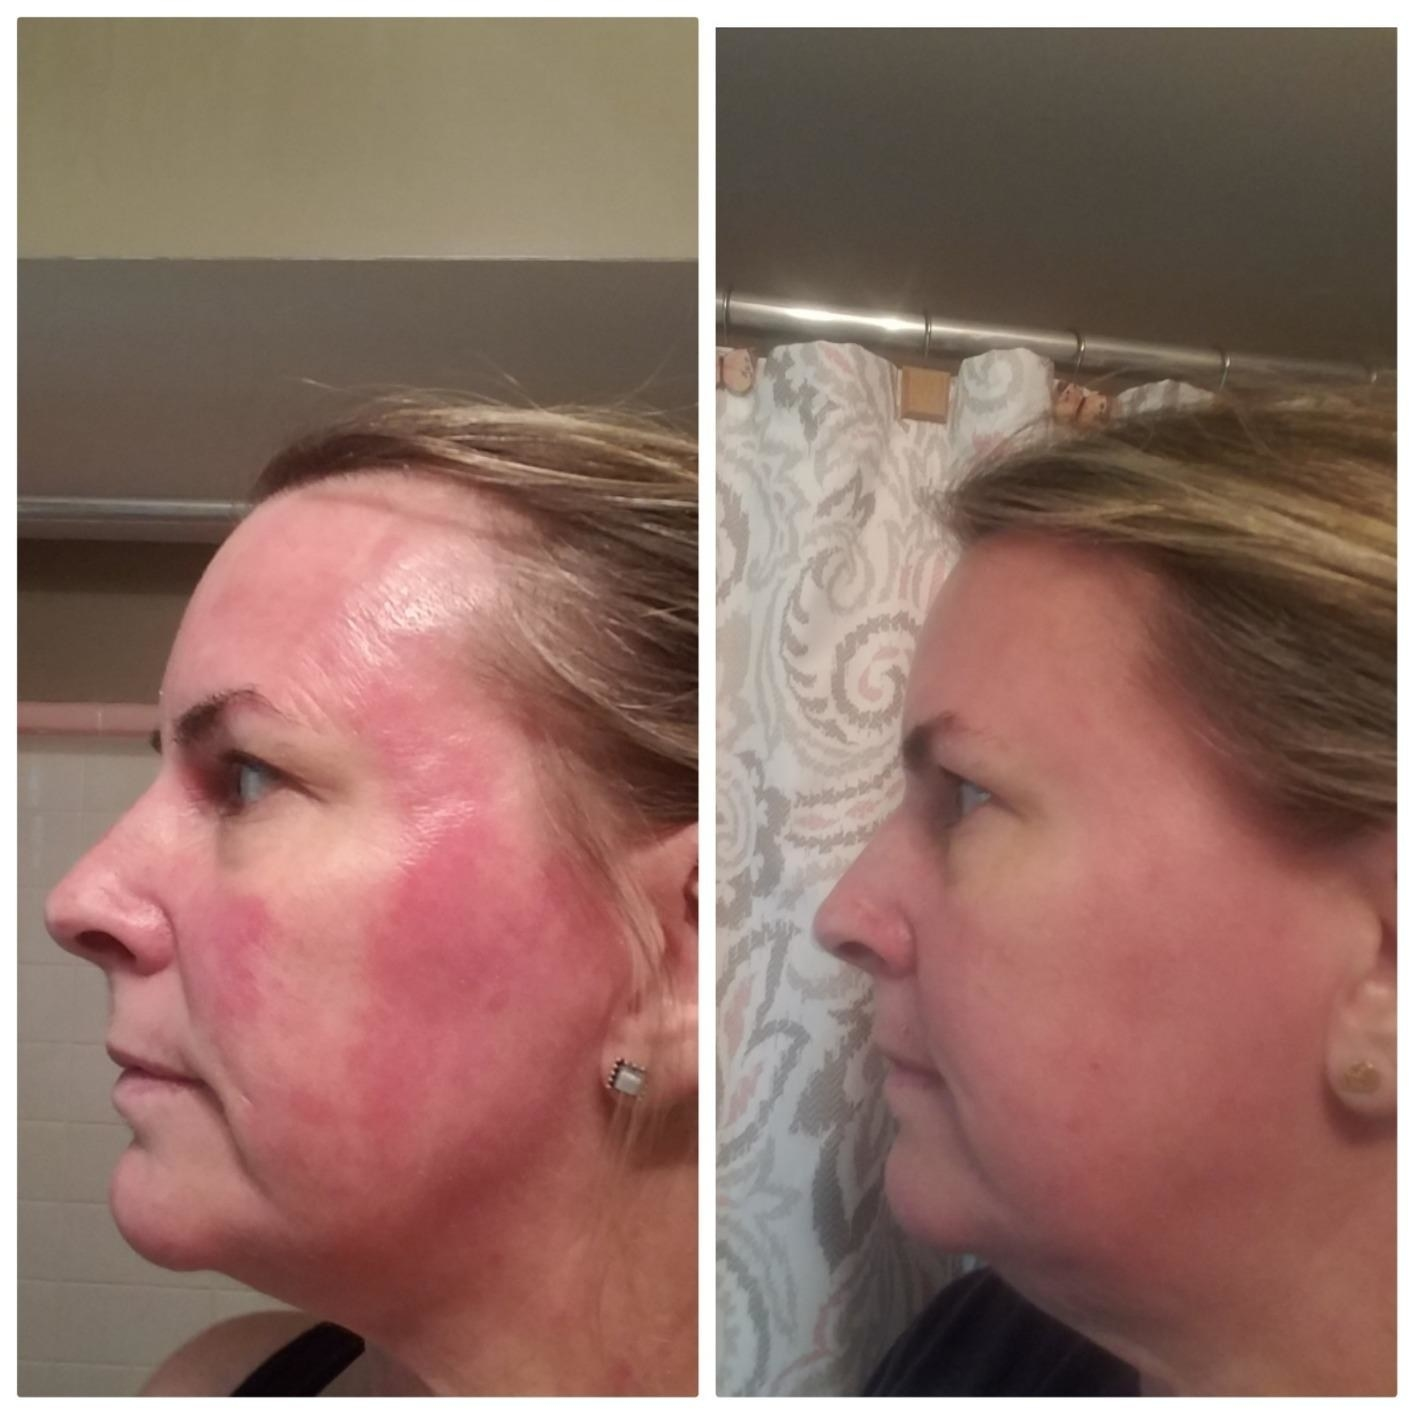 Reviewer before and after photo showing the cream substantially reduced redness on their cheek